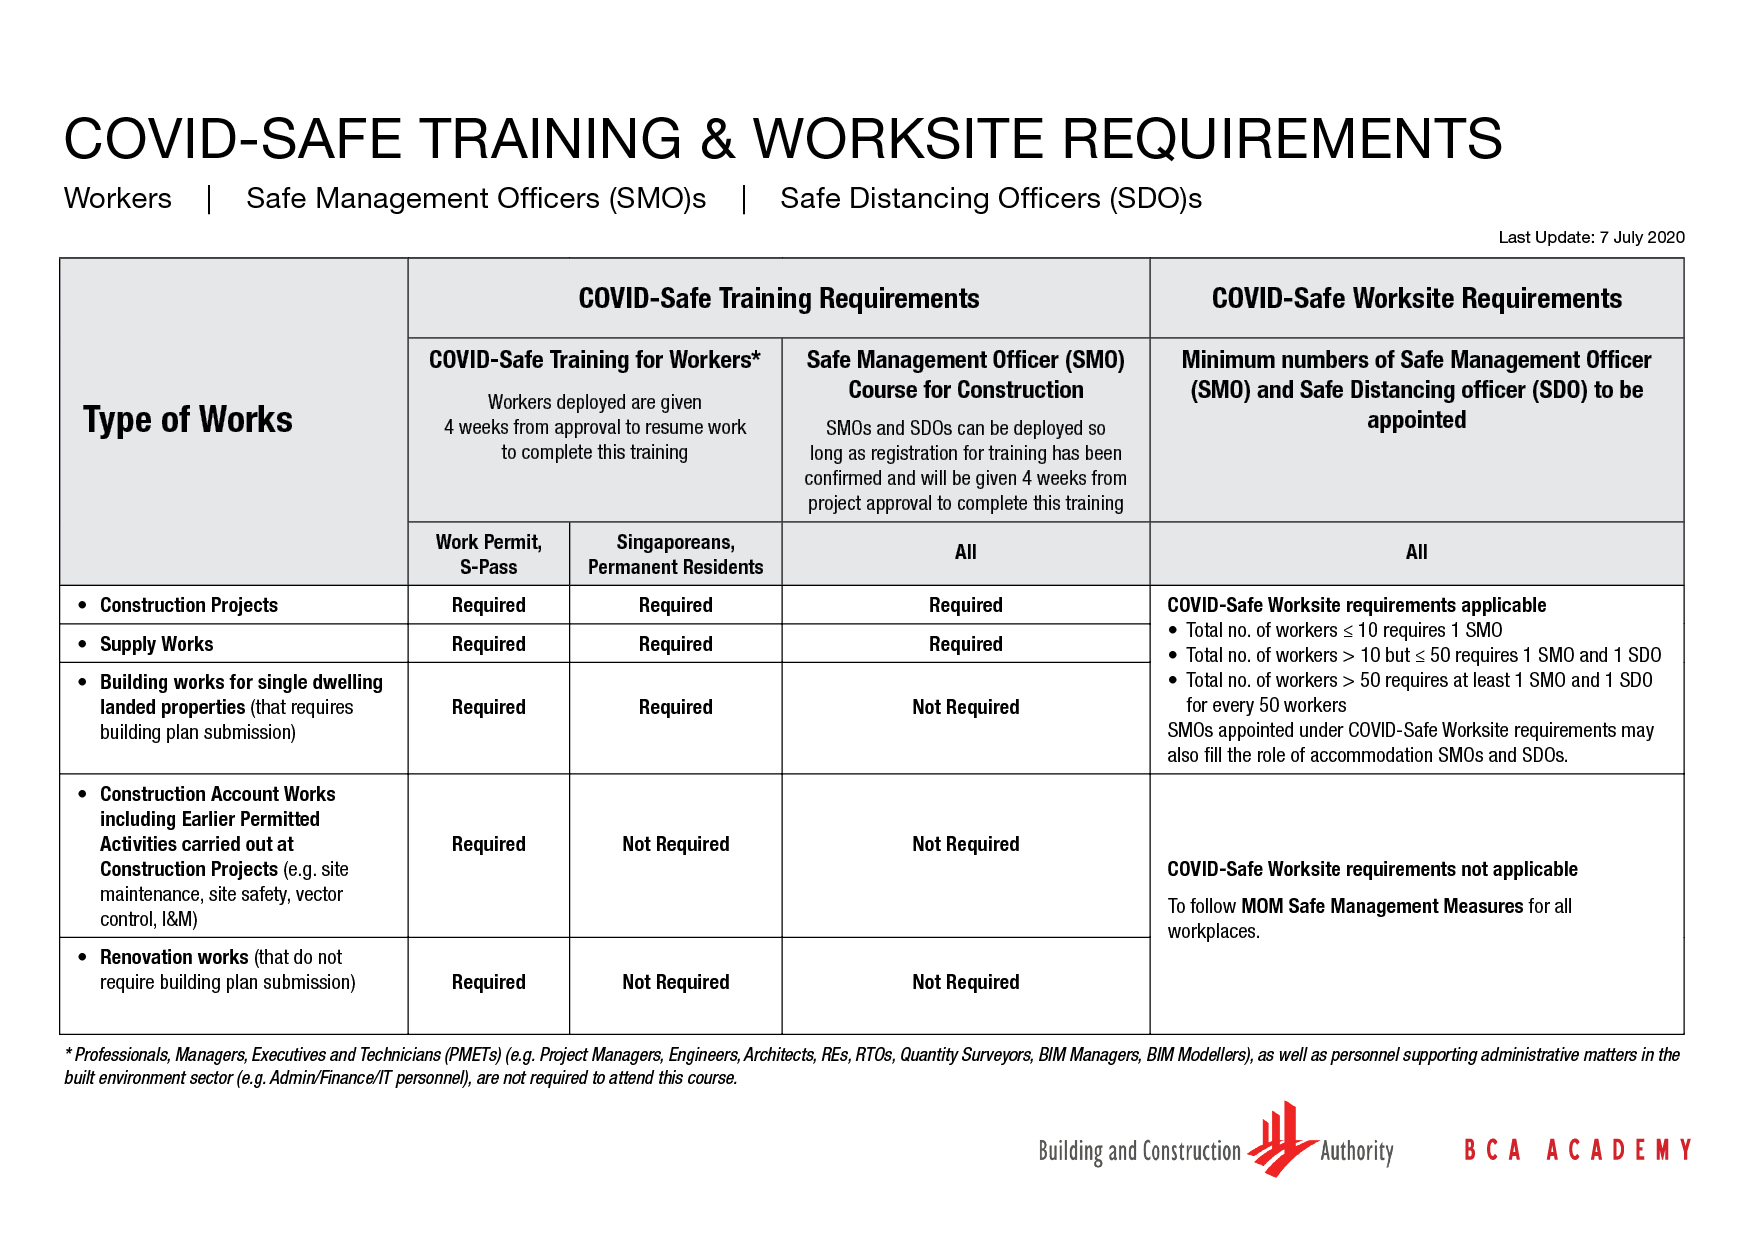 Training and Worksite Requirements 7 July 2020